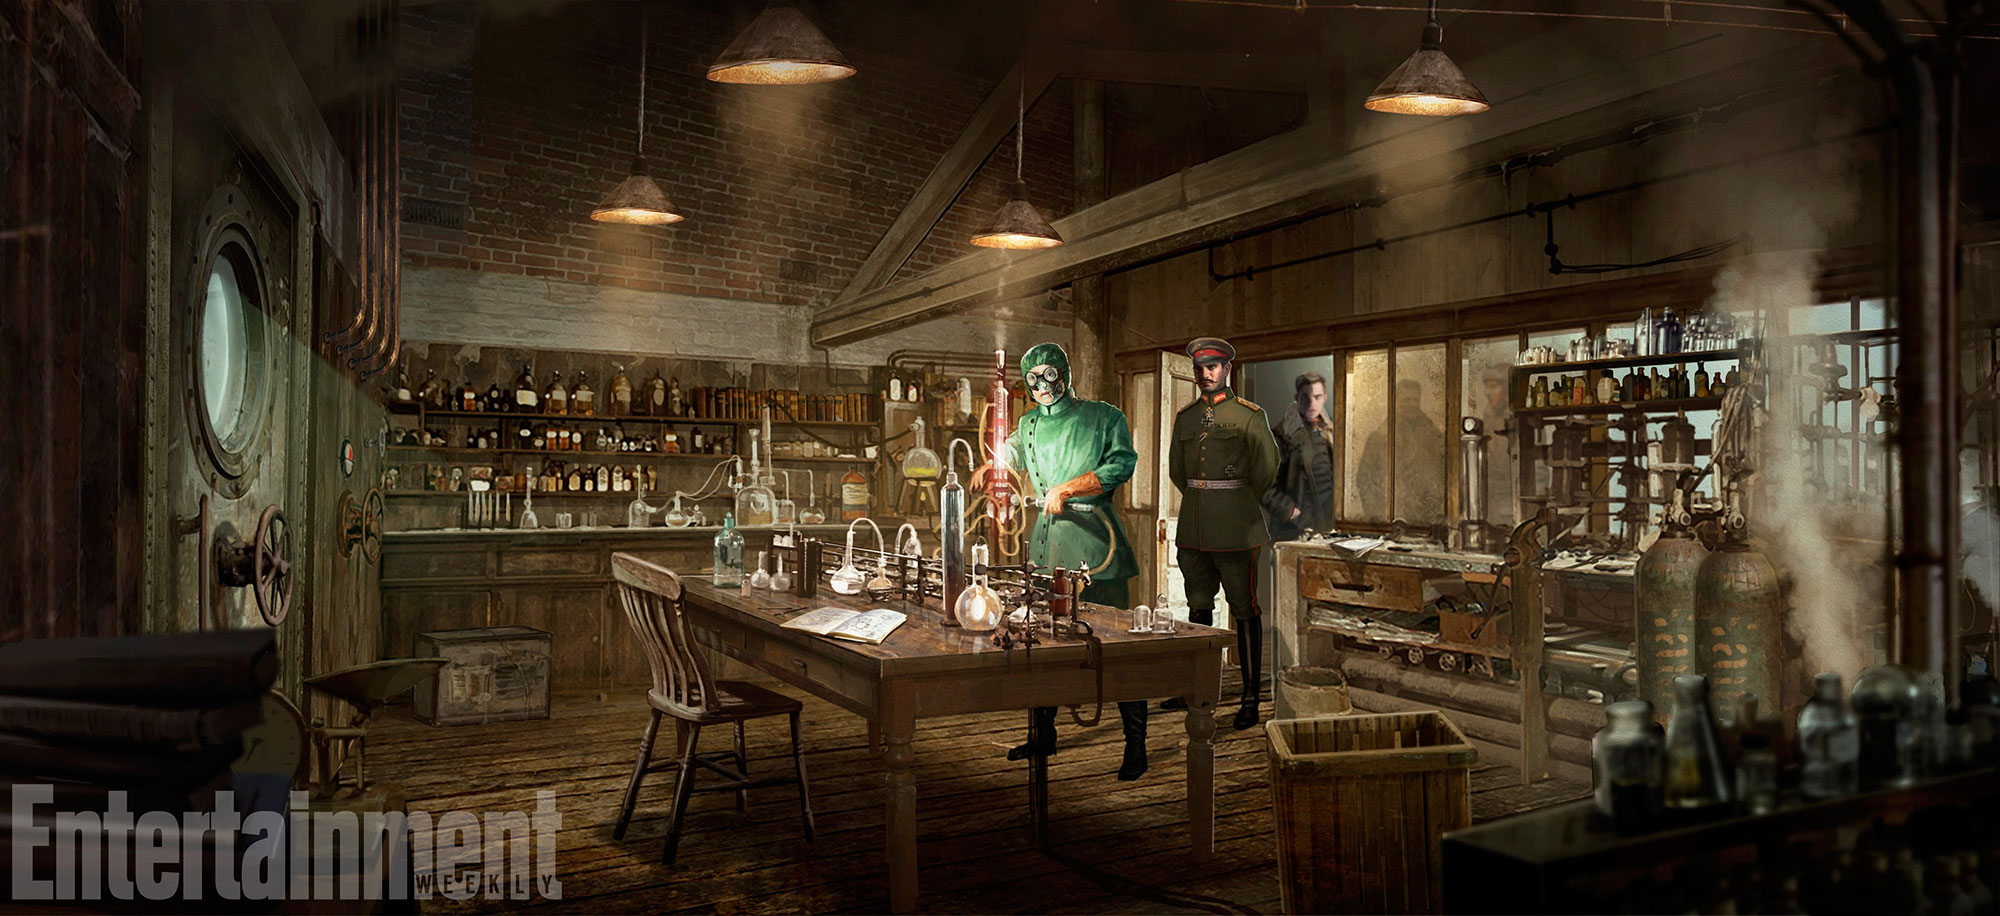 Wonder Woman (2017) Concept Art - Poison's Laboratory